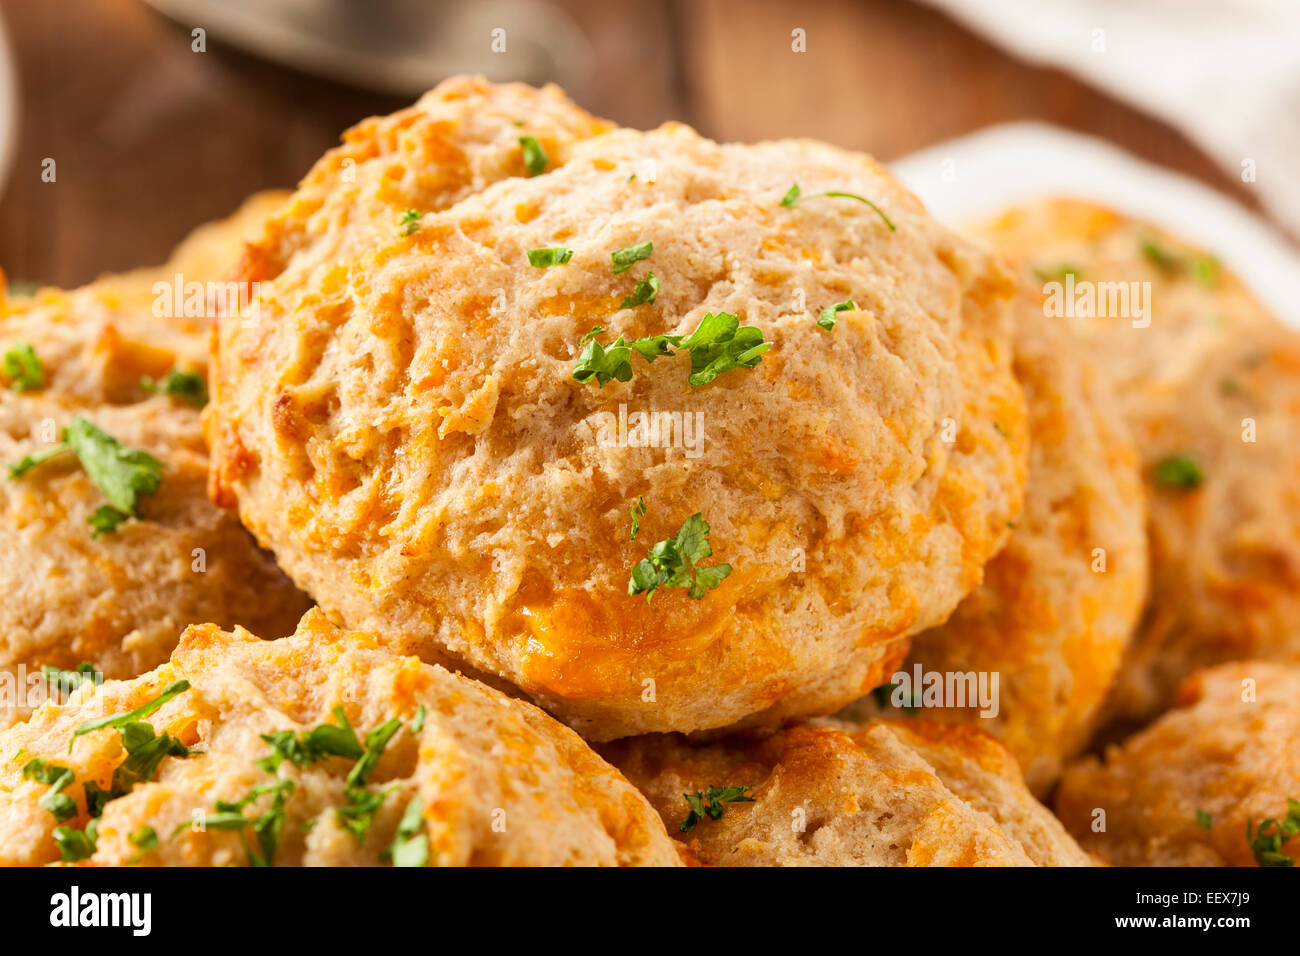 Homemade Cheddar Cheese Biscuits with Parsley - Stock Image